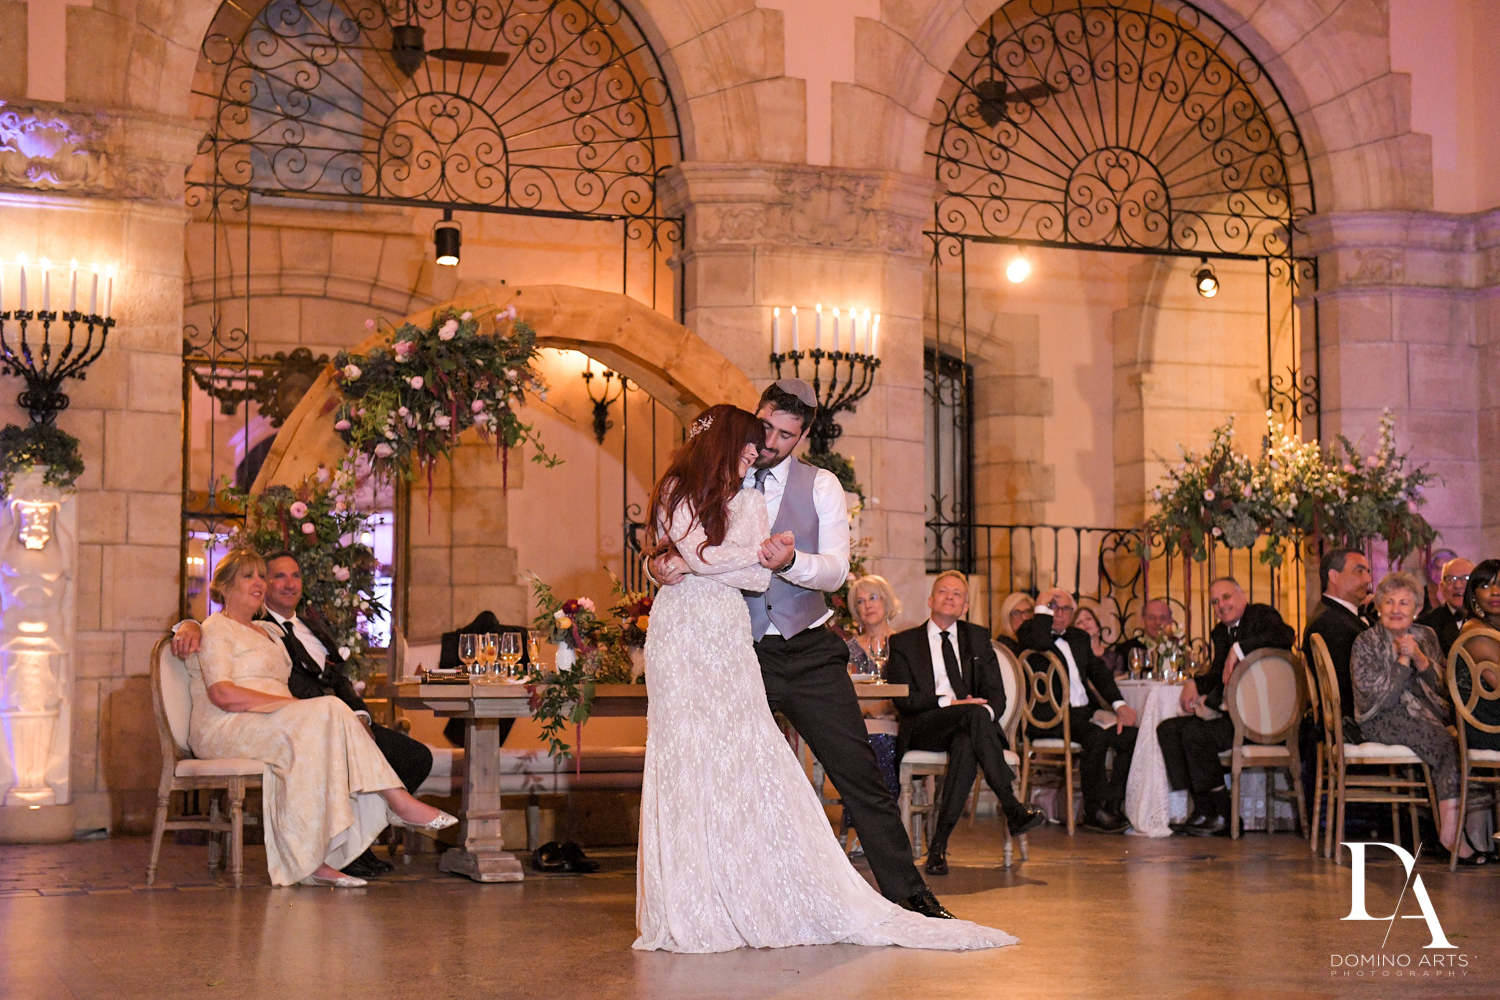 dancing at Vintage Garden Wedding at Flagler Museum Palm Beach by Domino Arts Photography